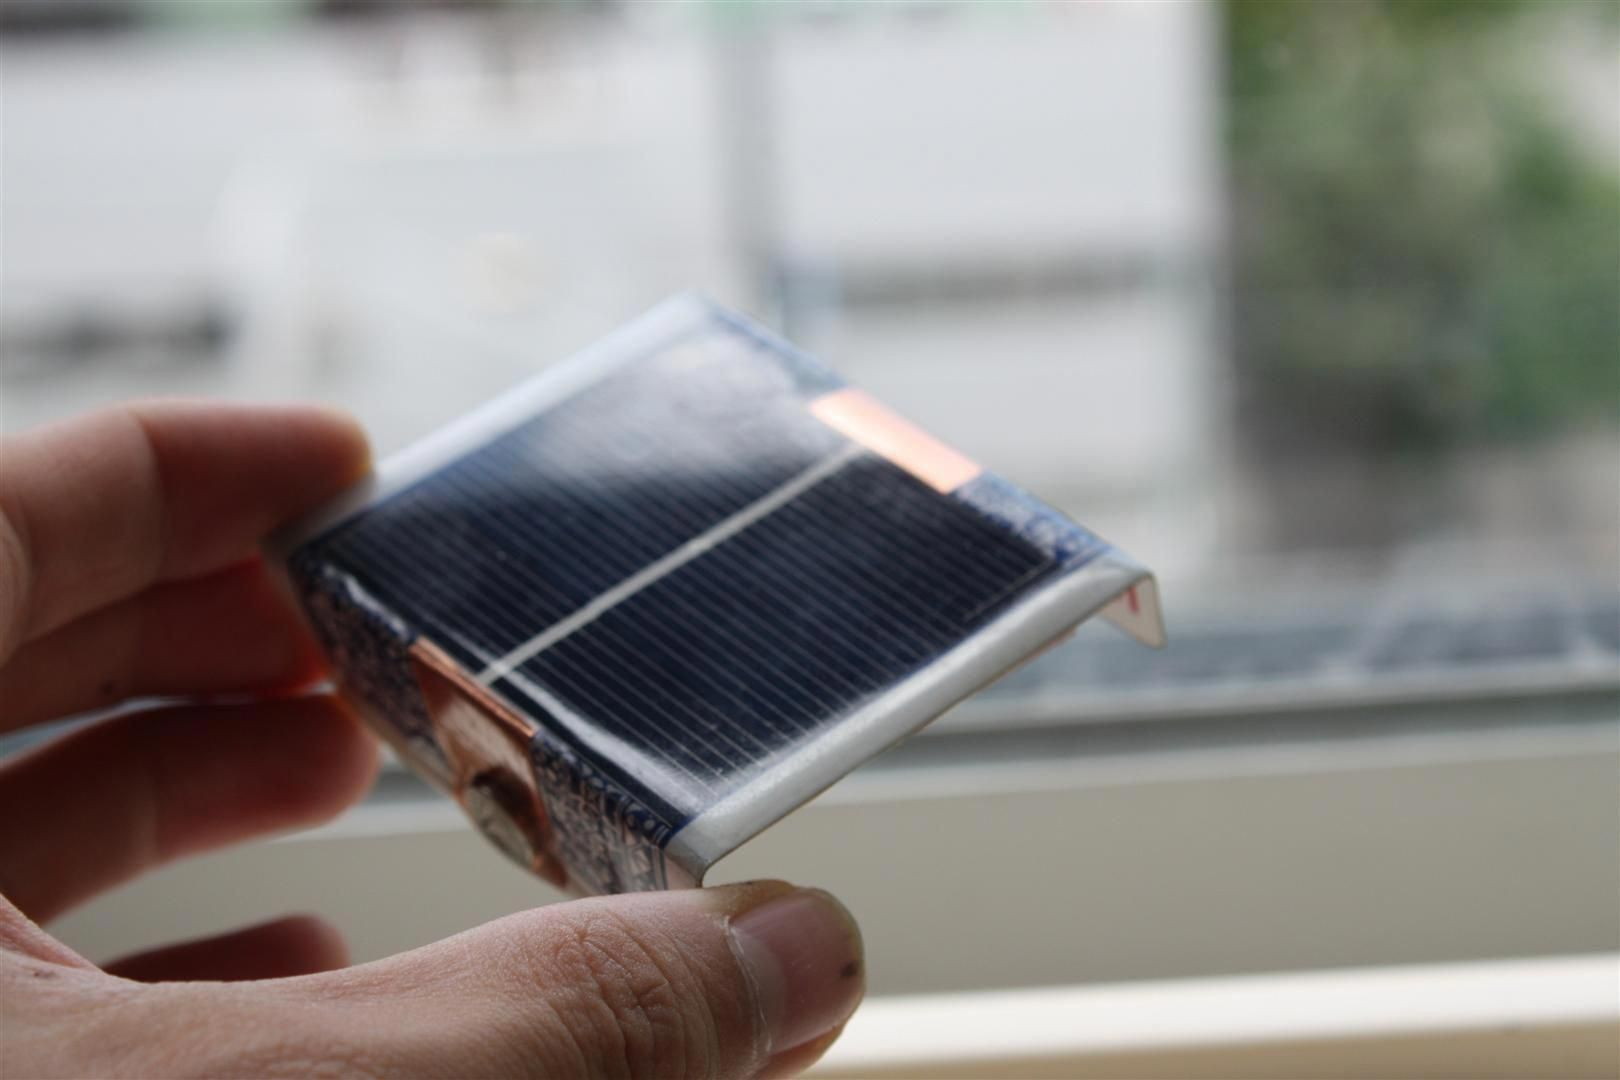 Turn A Playing Card Into A Solar Charger For Aa Batteries In 2020 Solar Battery Charger Solar Power Energy Solar Battery